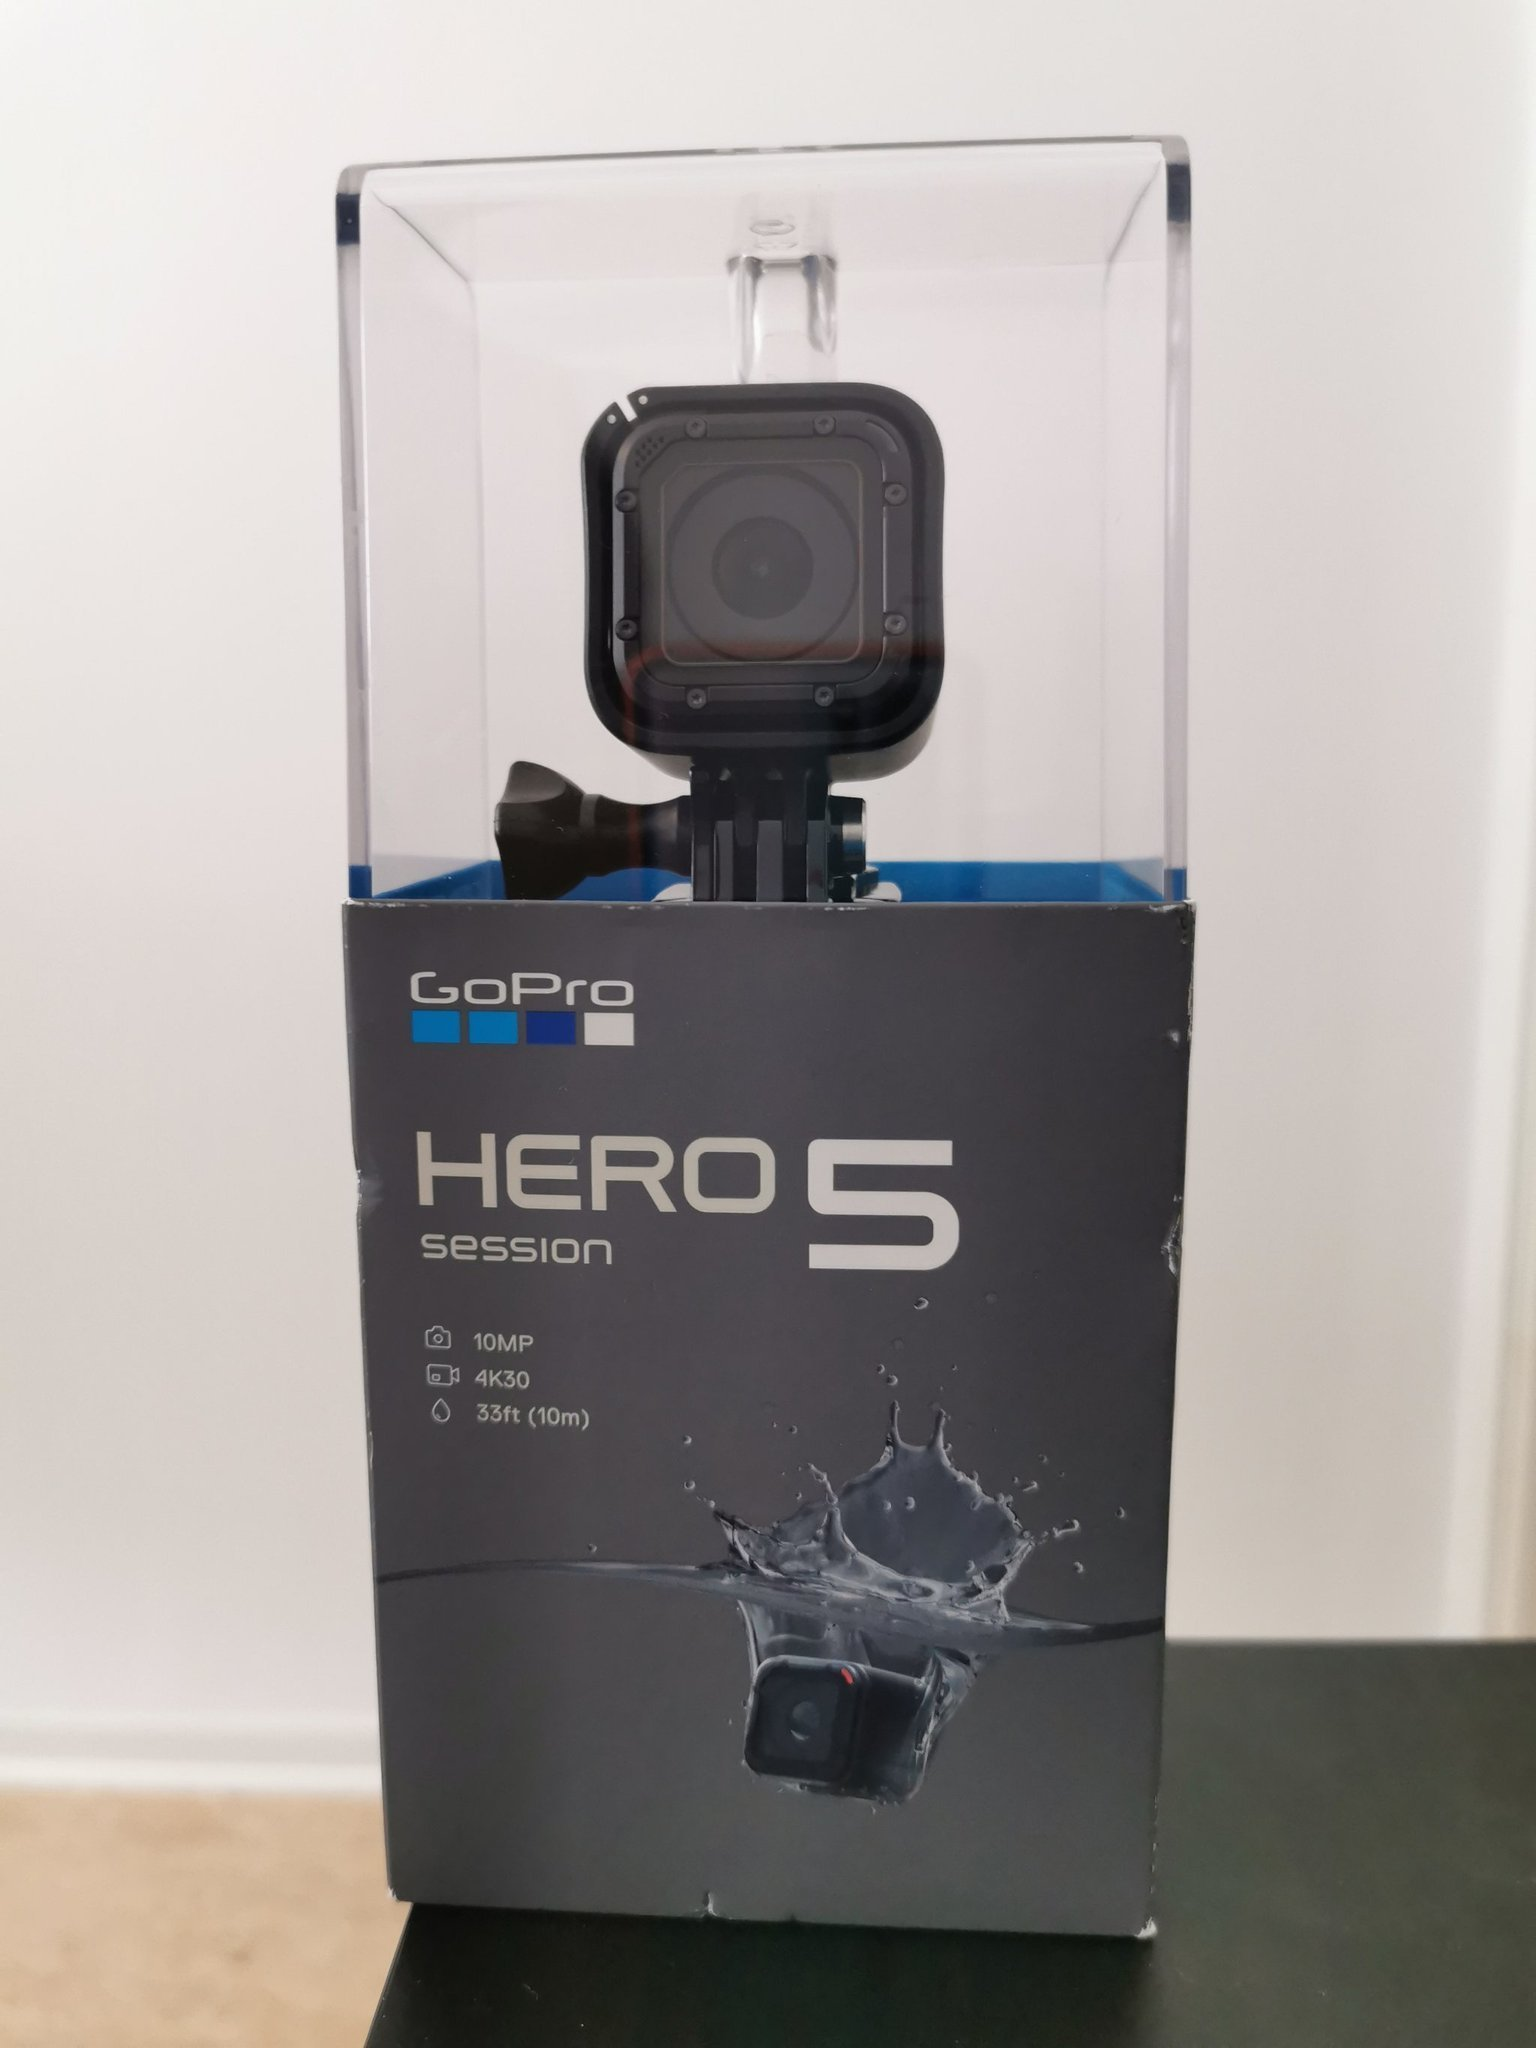 Oöppnad GoPro HERO5 Session